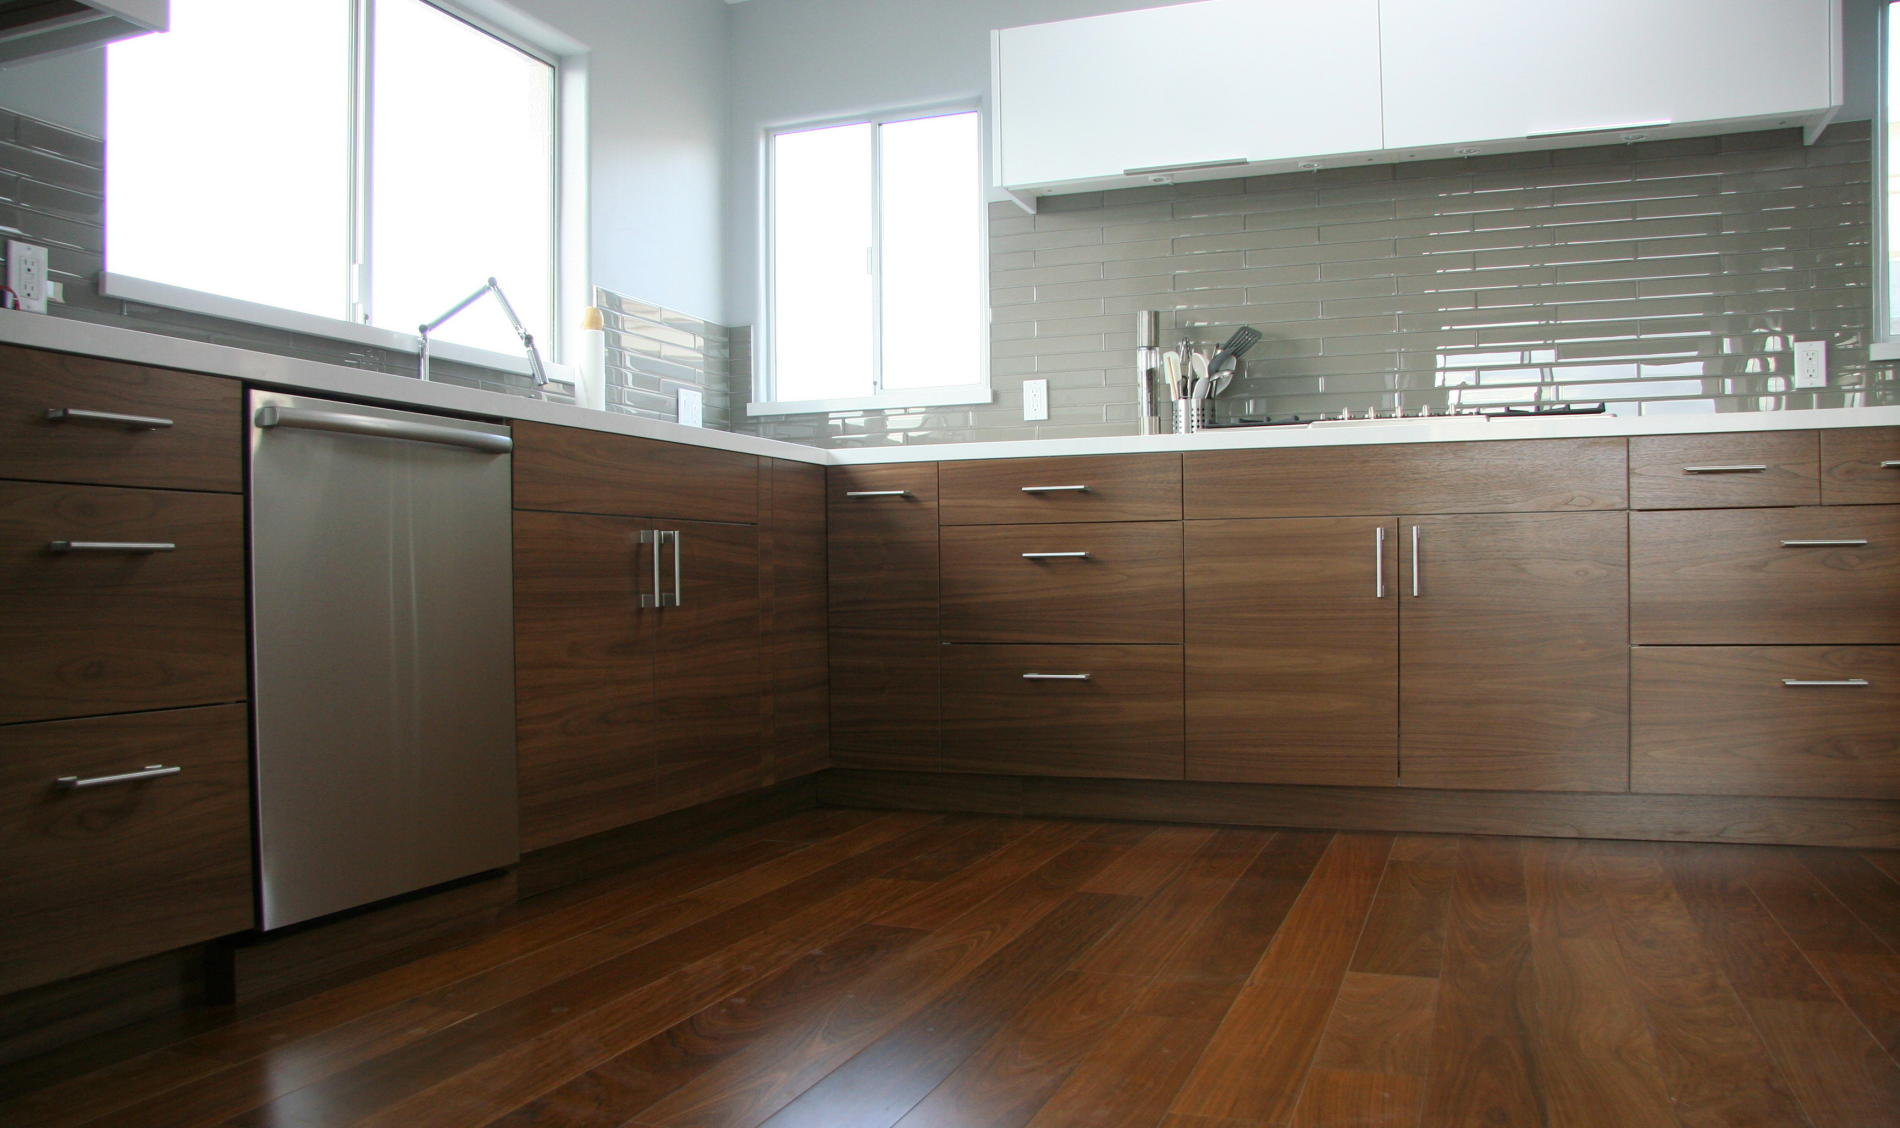 ikea kitchen cabinets ideas photo - 9